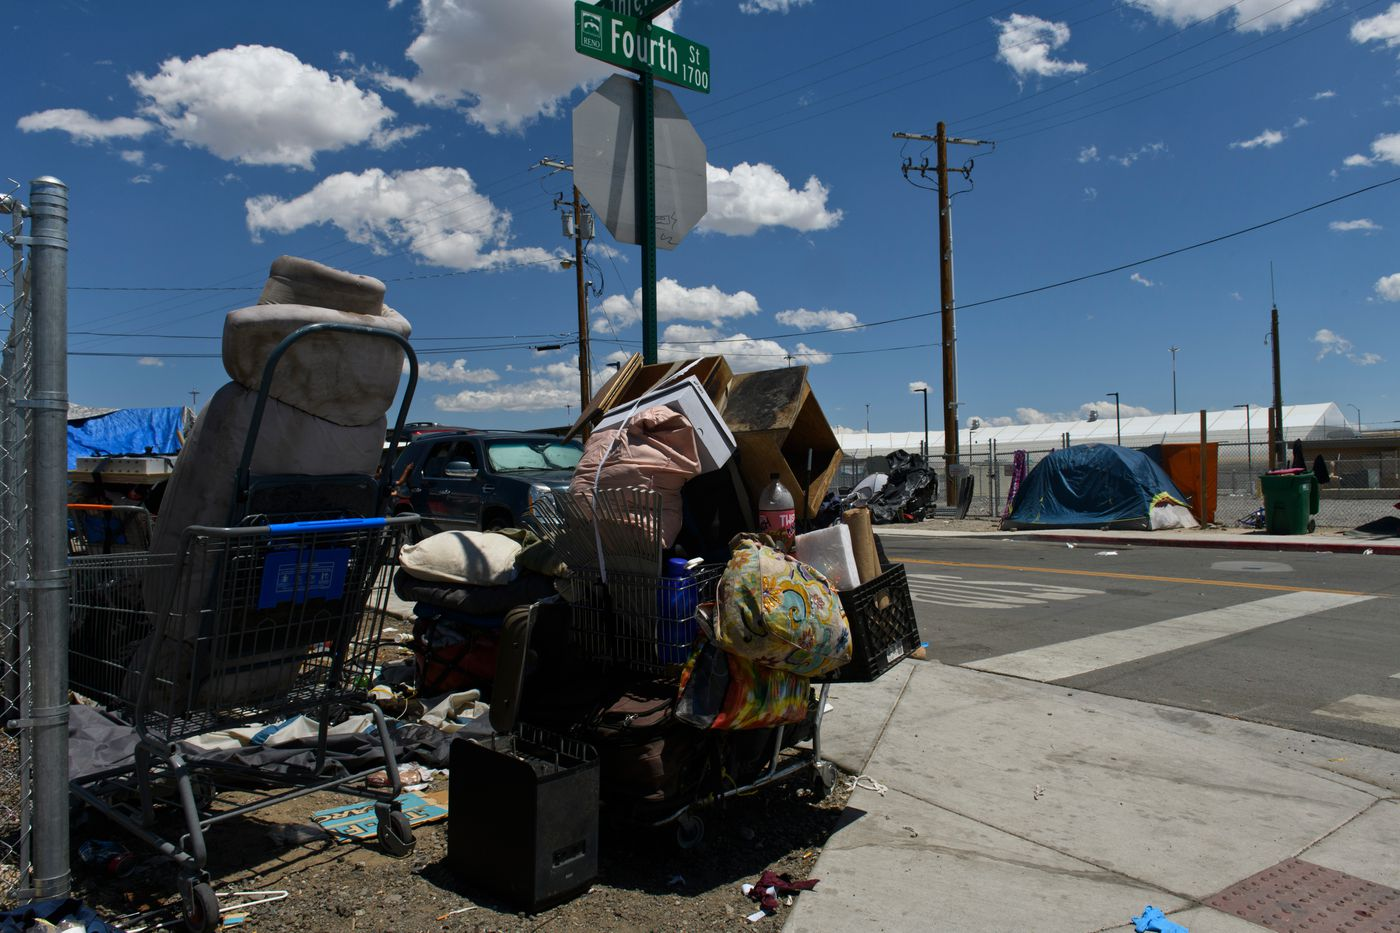 A small homeless encampment sits outside the Nevada CARES Campus entrance on June 23, 2021. Some members of Reno's homeless community said they aren't interested in staying inside the facility. The city cleared several large encampments in Reno once the Cares Campus opened in May. (Marc Lester / ADN)